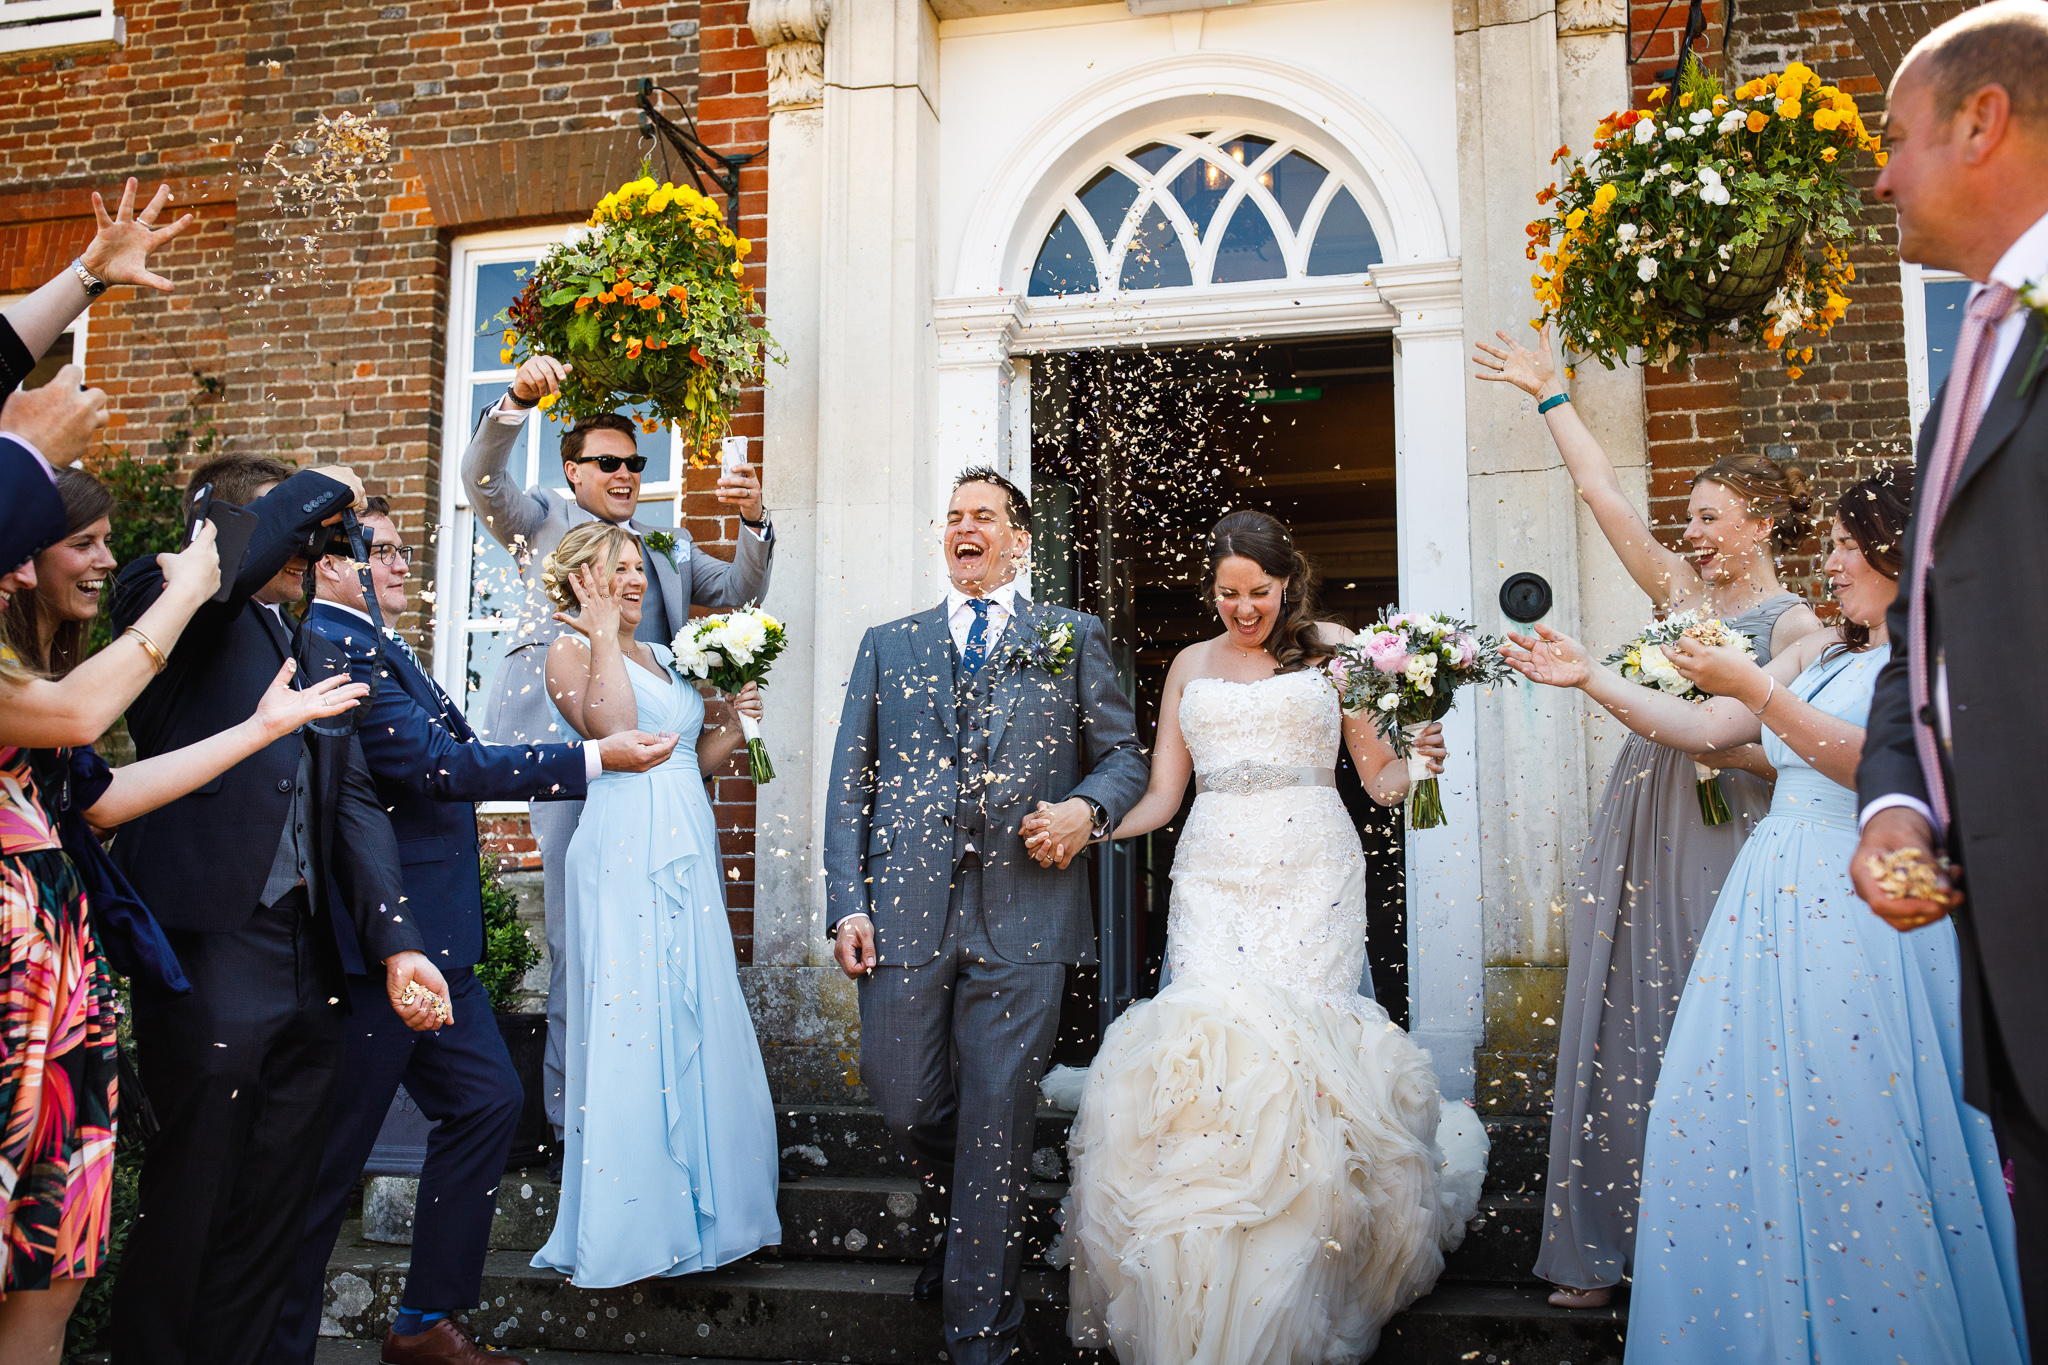 Shay & Laura's Wedding at Chilston Park